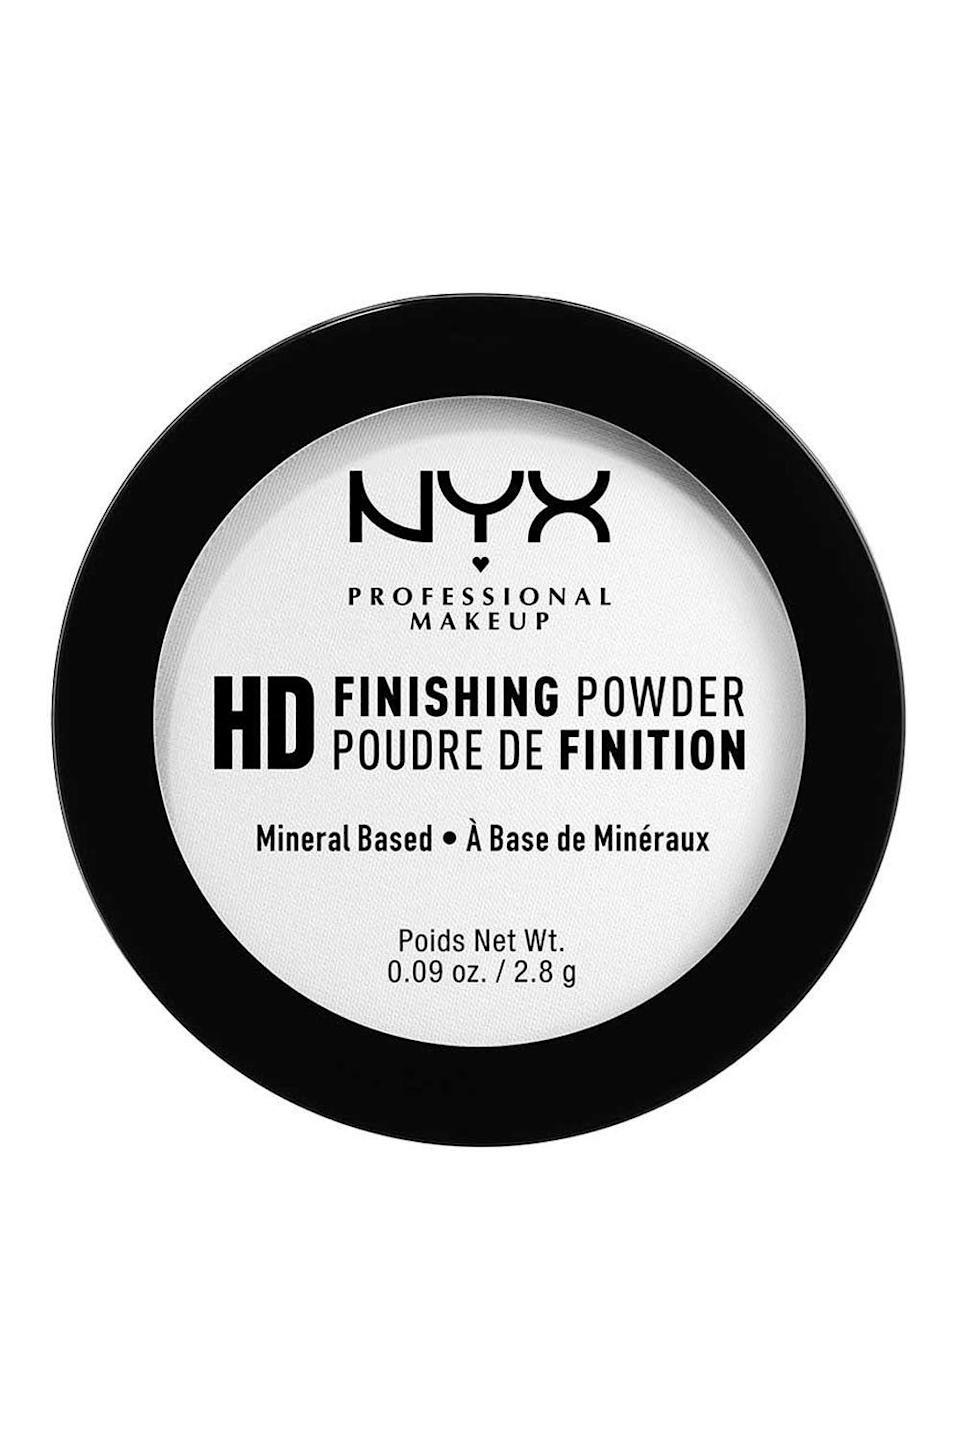 """<p><strong>NYX</strong></p><p>ulta.com</p><p><strong>$7.50</strong></p><p><a href=""""https://go.redirectingat.com?id=74968X1596630&url=https%3A%2F%2Fwww.ulta.com%2Fulta%2Fbrowse%2FproductDetail.jsp%3FproductId%3DxlsImpprod12011173&sref=https%3A%2F%2Fwww.cosmopolitan.com%2Fstyle-beauty%2Fbeauty%2Fg32729898%2Fbest-drugstore-setting-powder%2F"""" rel=""""nofollow noopener"""" target=""""_blank"""" data-ylk=""""slk:Shop Now"""" class=""""link rapid-noclick-resp"""">Shop Now</a></p><p>Say it with me: Setting powder is supposed to work <em>with</em> your makeup, not against it. If you're noticing that your powder isn't meshing with your makeup (AKA it's pilling or caking up), switch to this drugstore setting powder. <strong>It's so lightweight, the translucent formula basically disappears on your skin.</strong> So go ahead and layer it on top of your <a href=""""https://www.cosmopolitan.com/style-beauty/beauty/g10202733/best-drugstore-foundations/"""" rel=""""nofollow noopener"""" target=""""_blank"""" data-ylk=""""slk:foundation"""" class=""""link rapid-noclick-resp"""">foundation</a>—you won't notice it.</p>"""